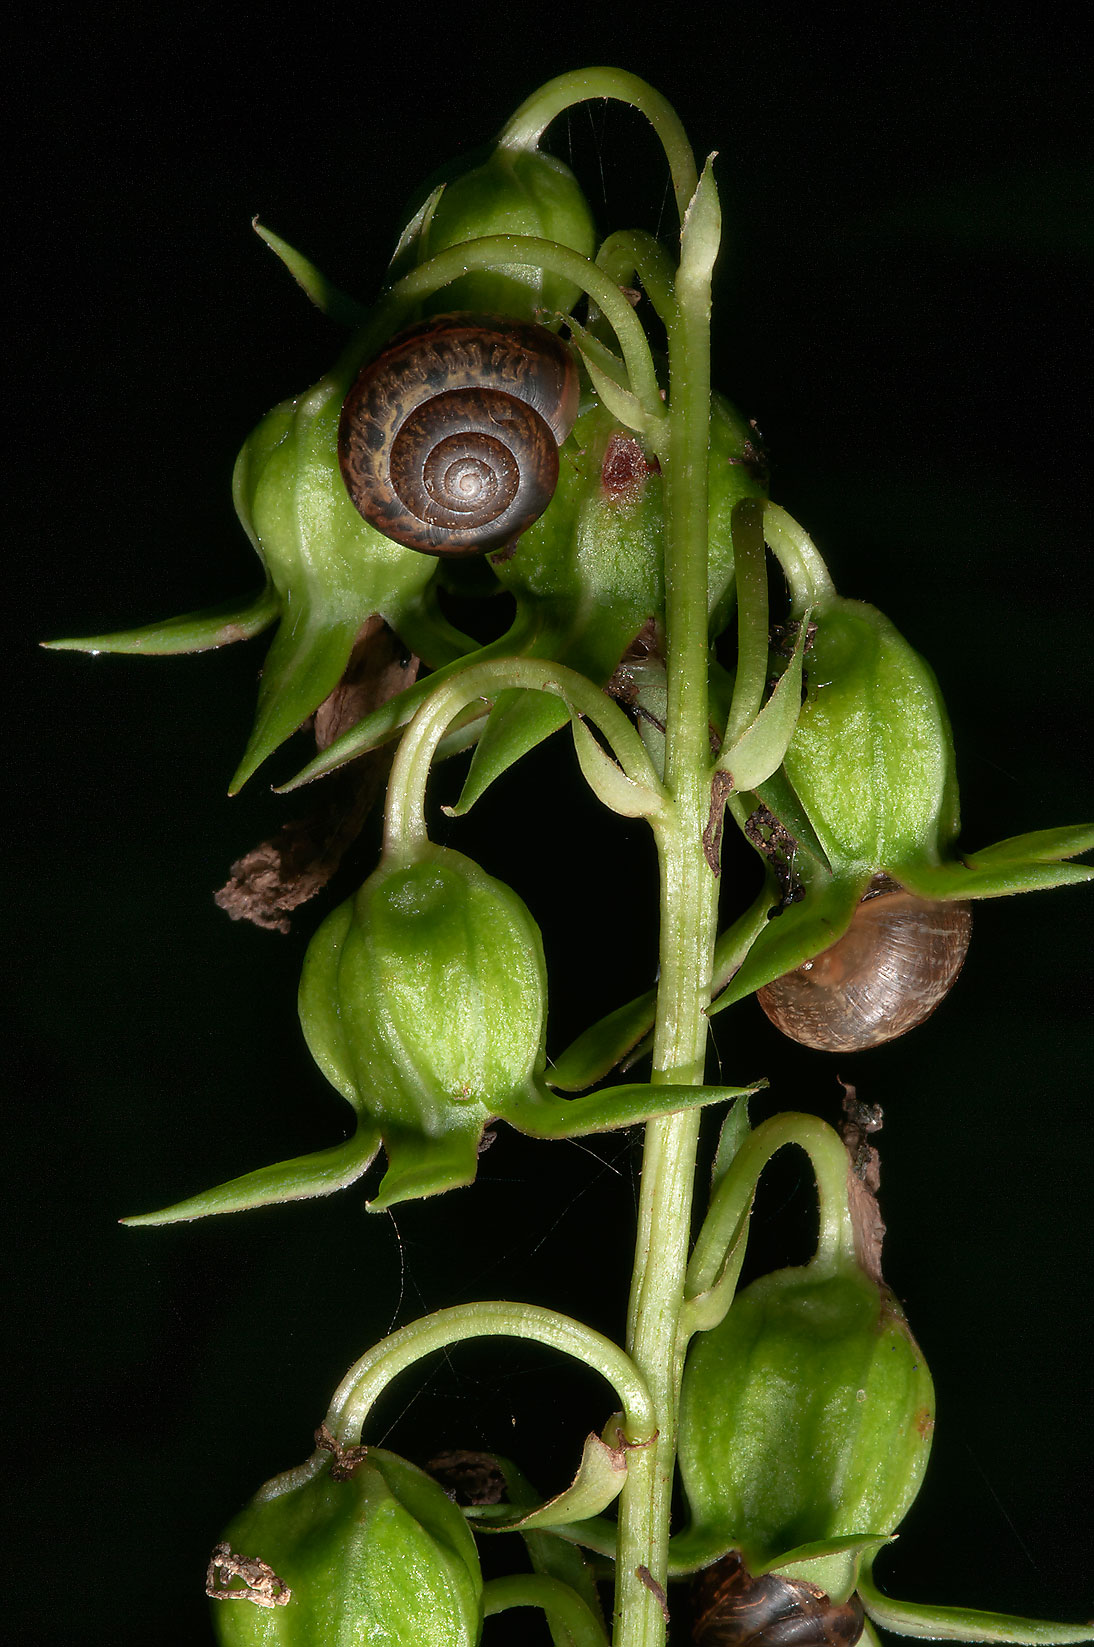 Snails on some seed pods near Sablinka River in...miles south from St.Petersburg. Russia